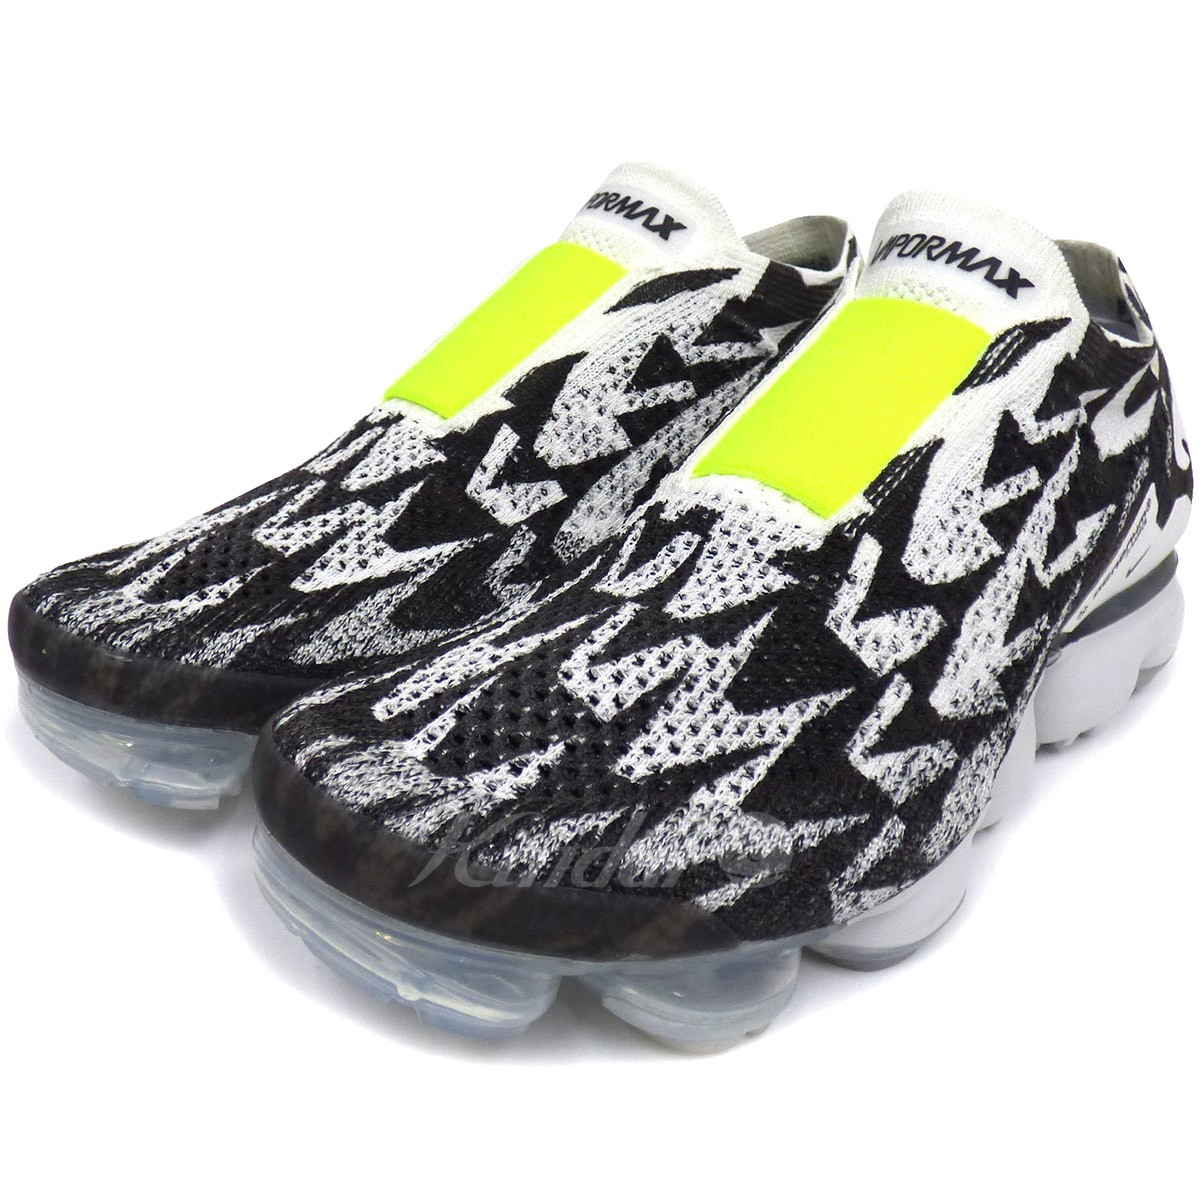 6c6355883848 ACRONYM X NIKE AIR VAPORMAX FLYKNIT MOC 2 air vapor max sneakers white X  black size  US8. 5 (26.5cm) (アクロニウム)